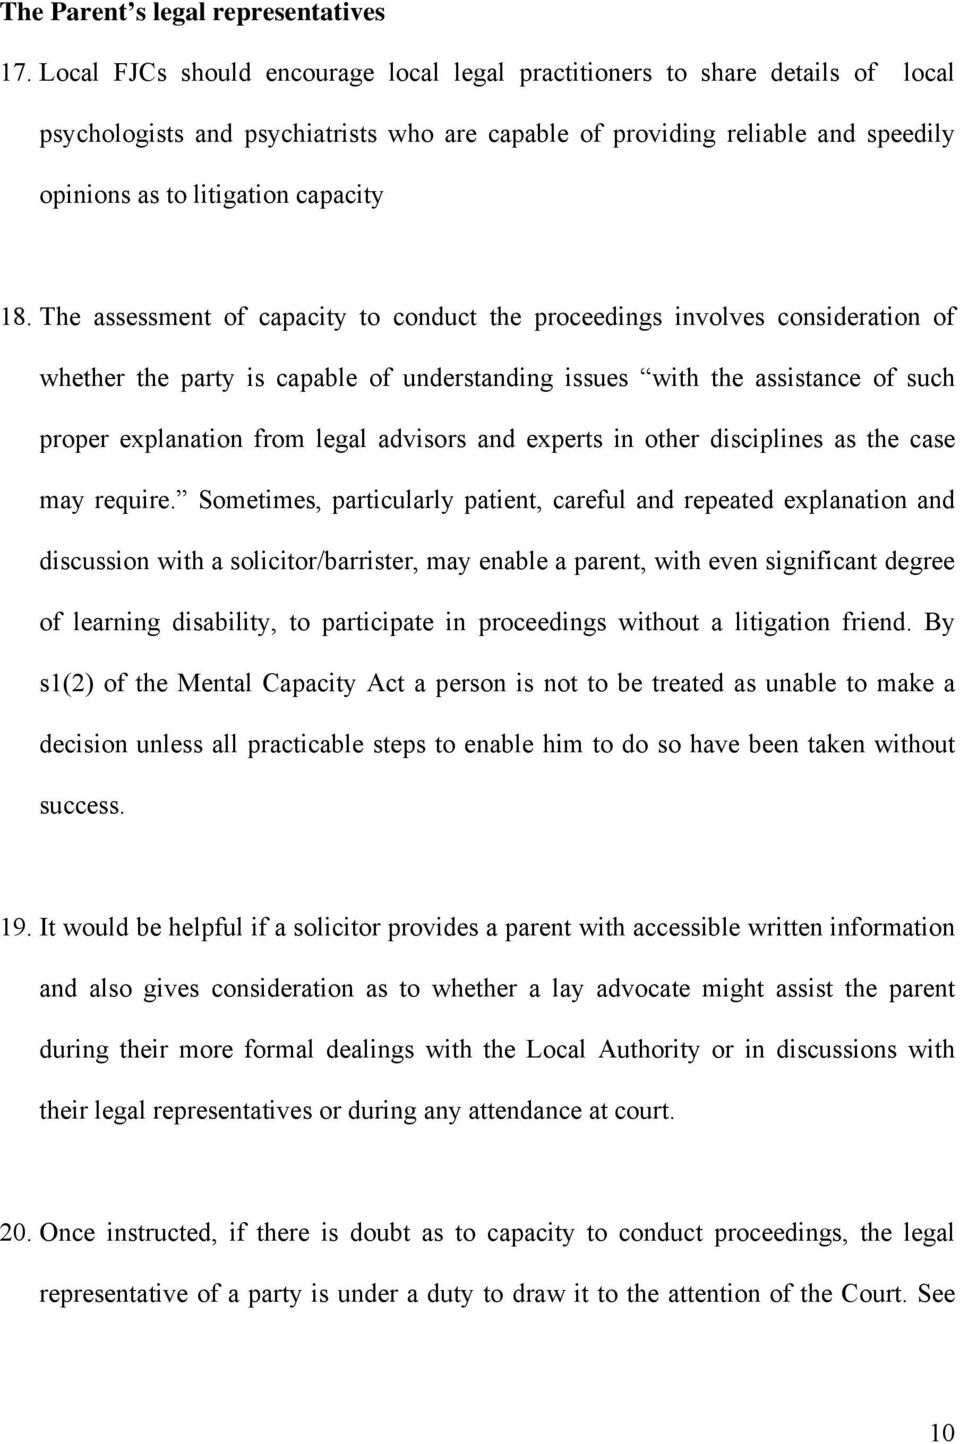 18. The assessment of capacity to conduct the proceedings involves consideration of whether the party is capable of understanding issues with the assistance of such proper explanation from legal